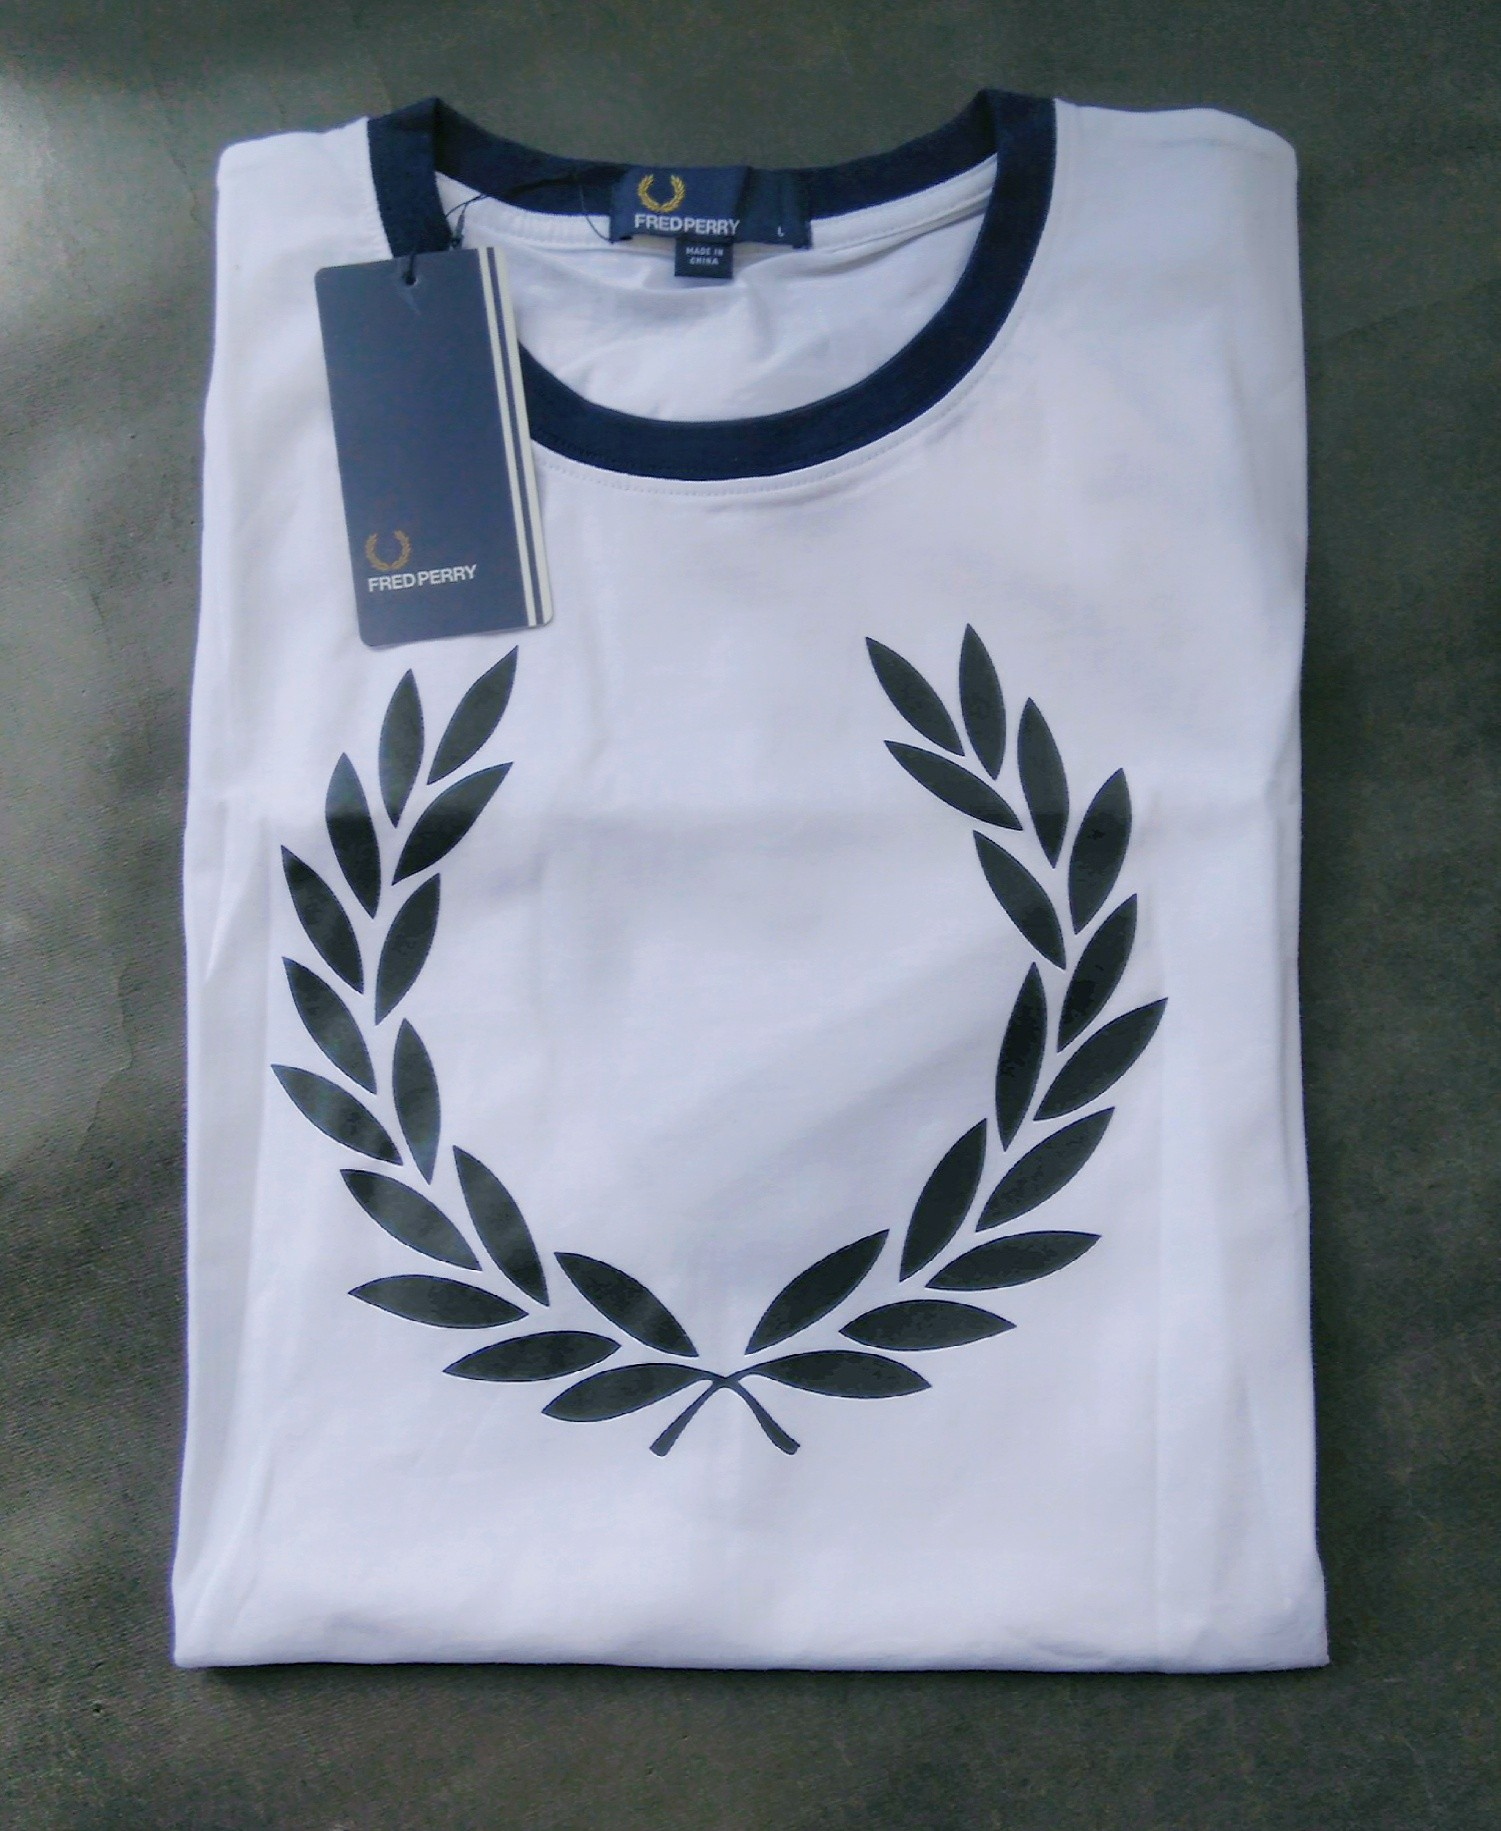 Fred Perry Laurel Wreath Ringer T-shirt White